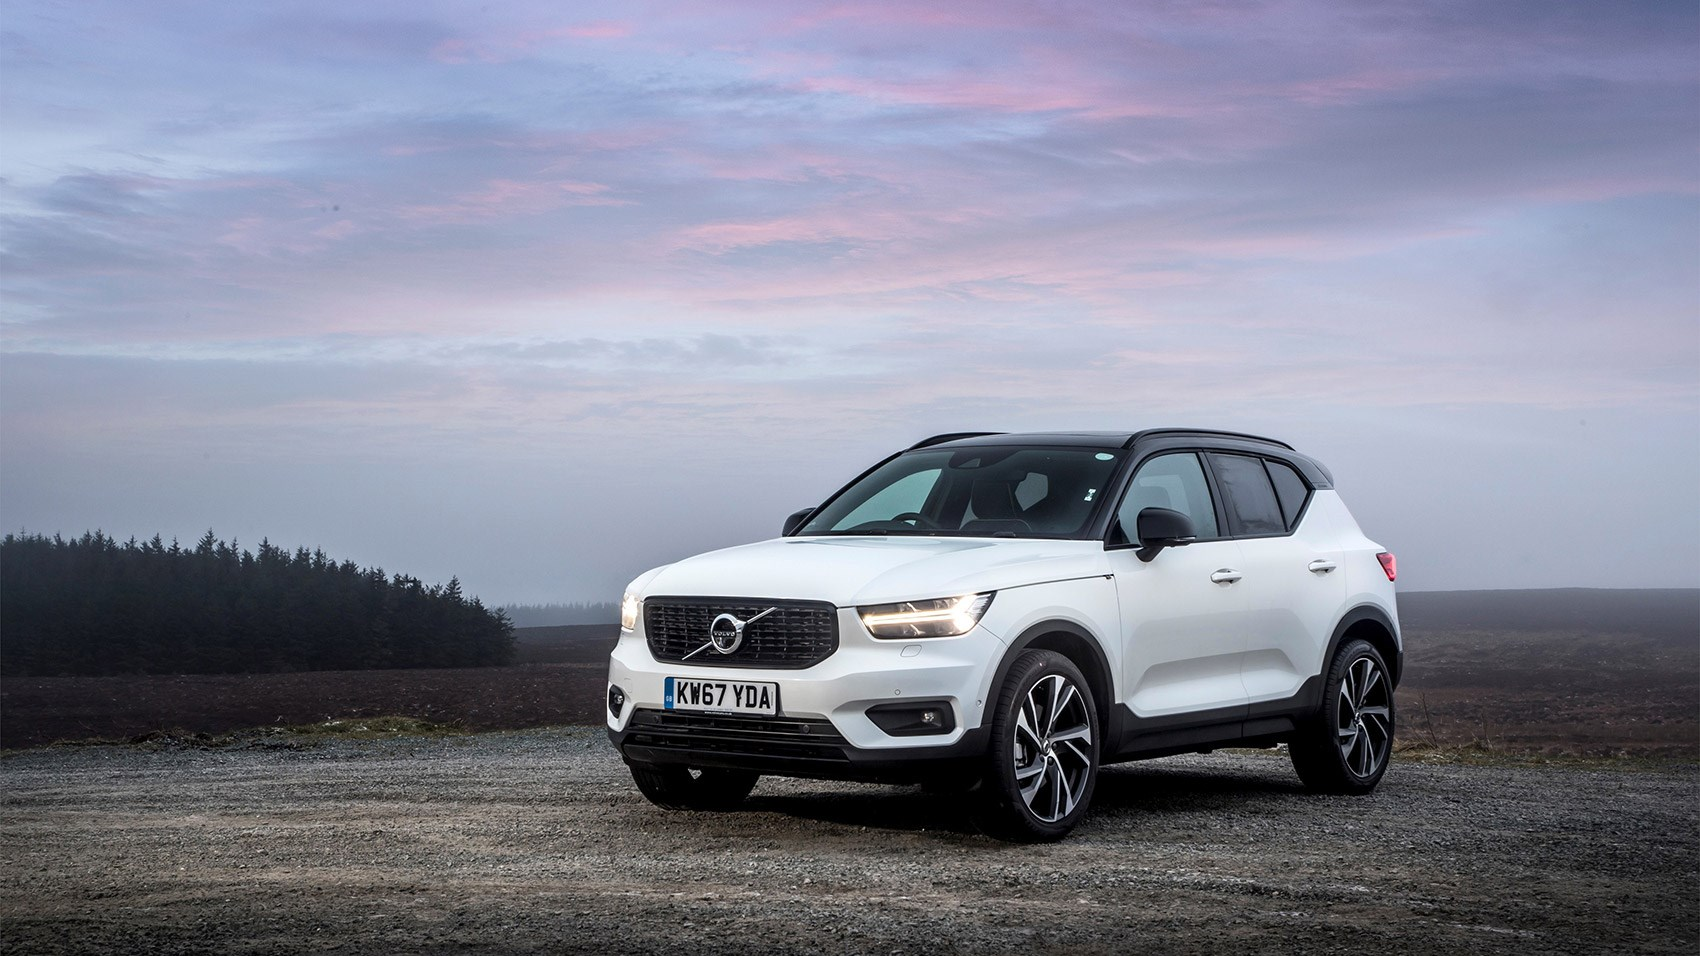 volvo xc40 suv review specs prices pictures by car magazine. Black Bedroom Furniture Sets. Home Design Ideas